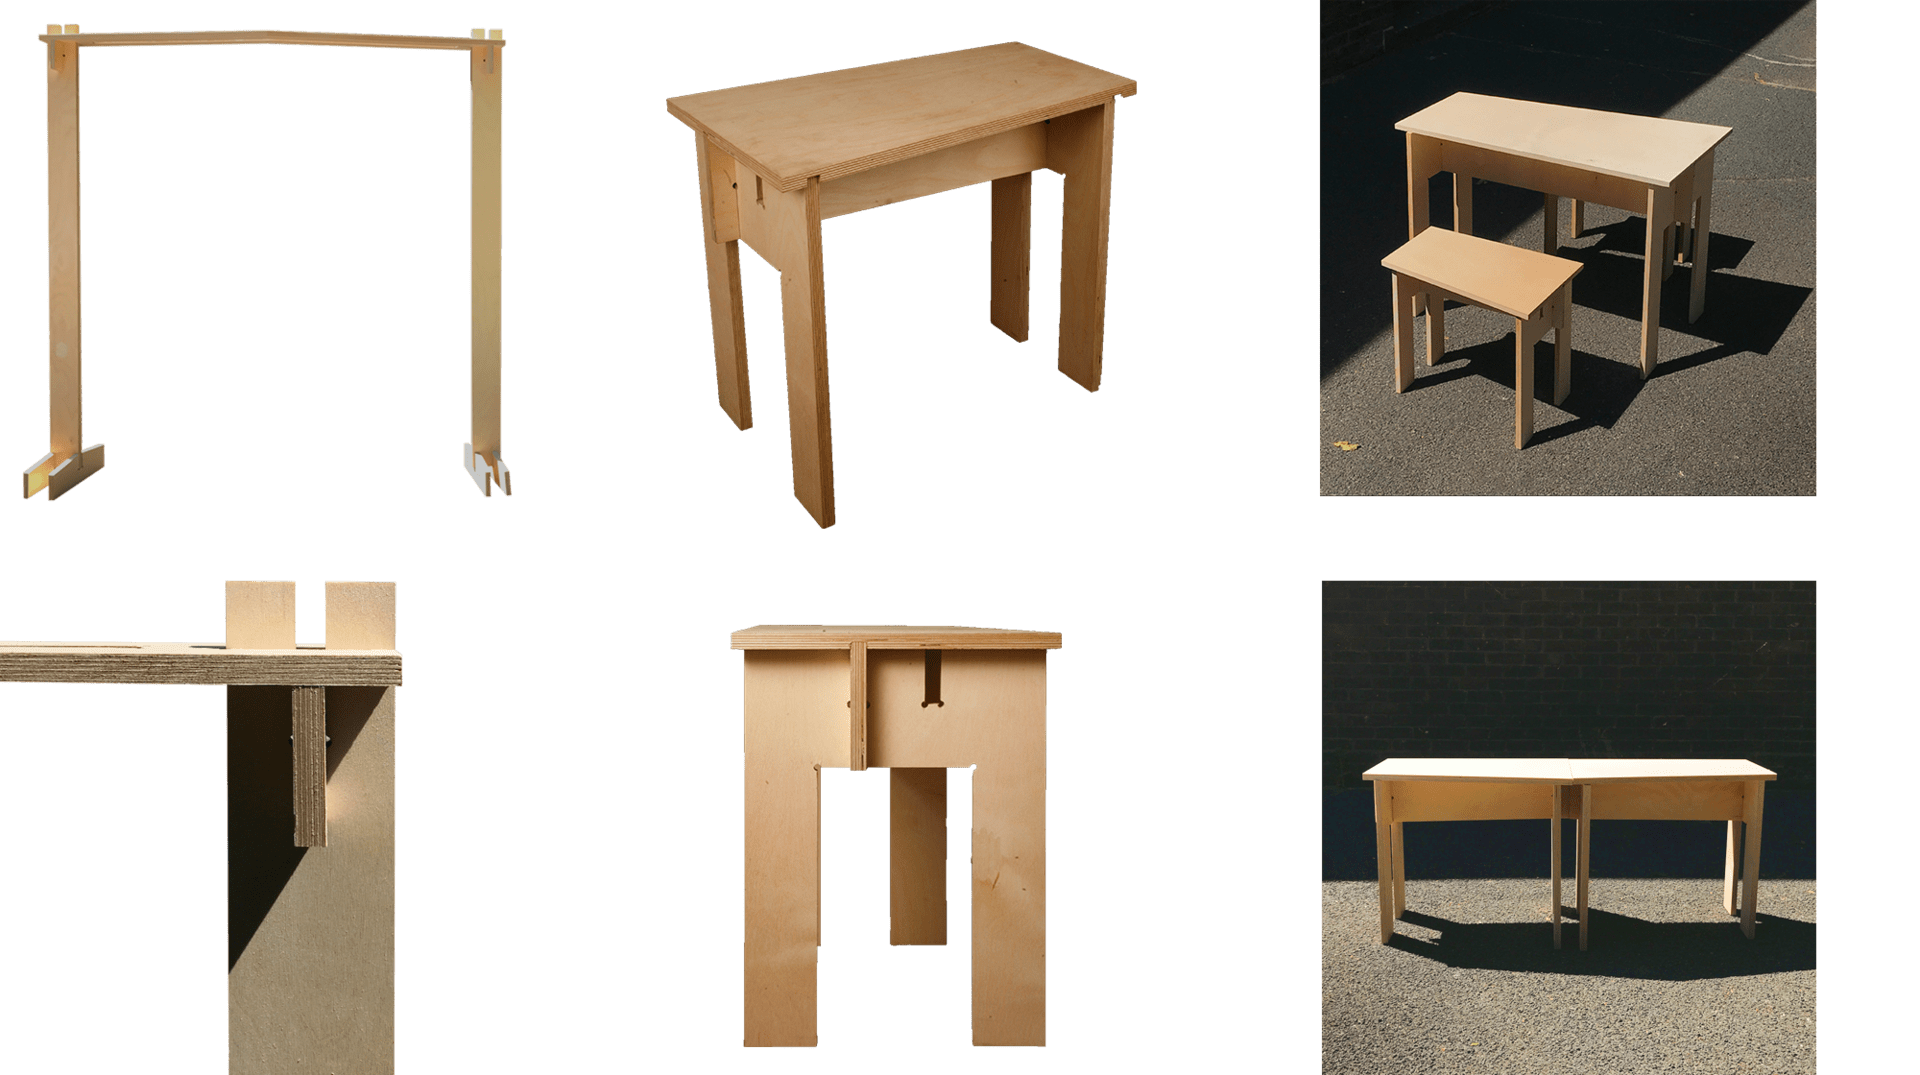 Tables, fixture-free joints and wooden frame prototypes. *Images by Daniel Johns